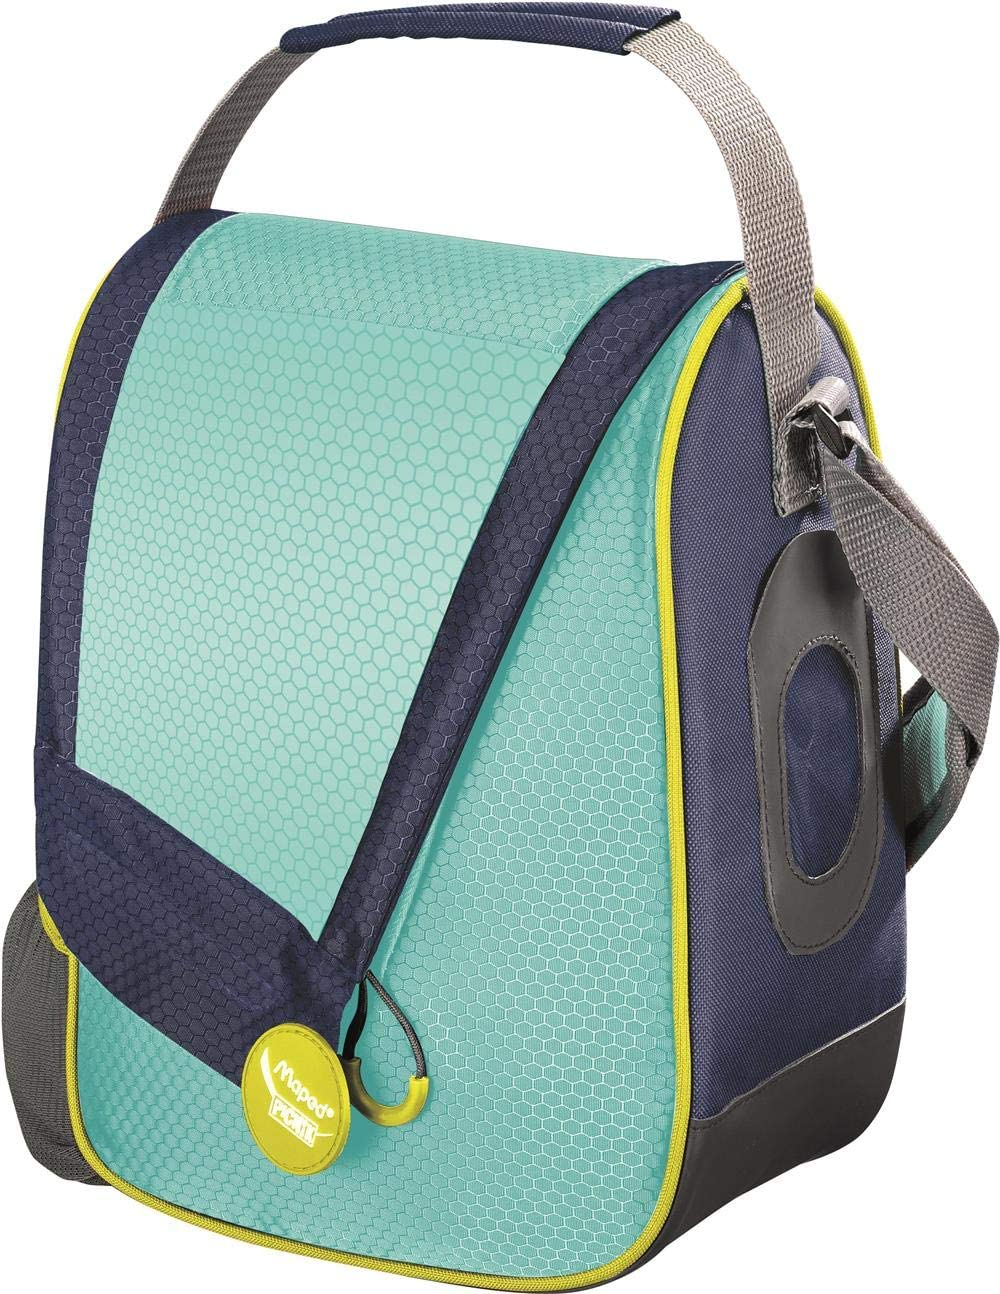 Maped Picnik Concept Easy-Clean Insulated Lunch Box, One Size, Blue (872017)